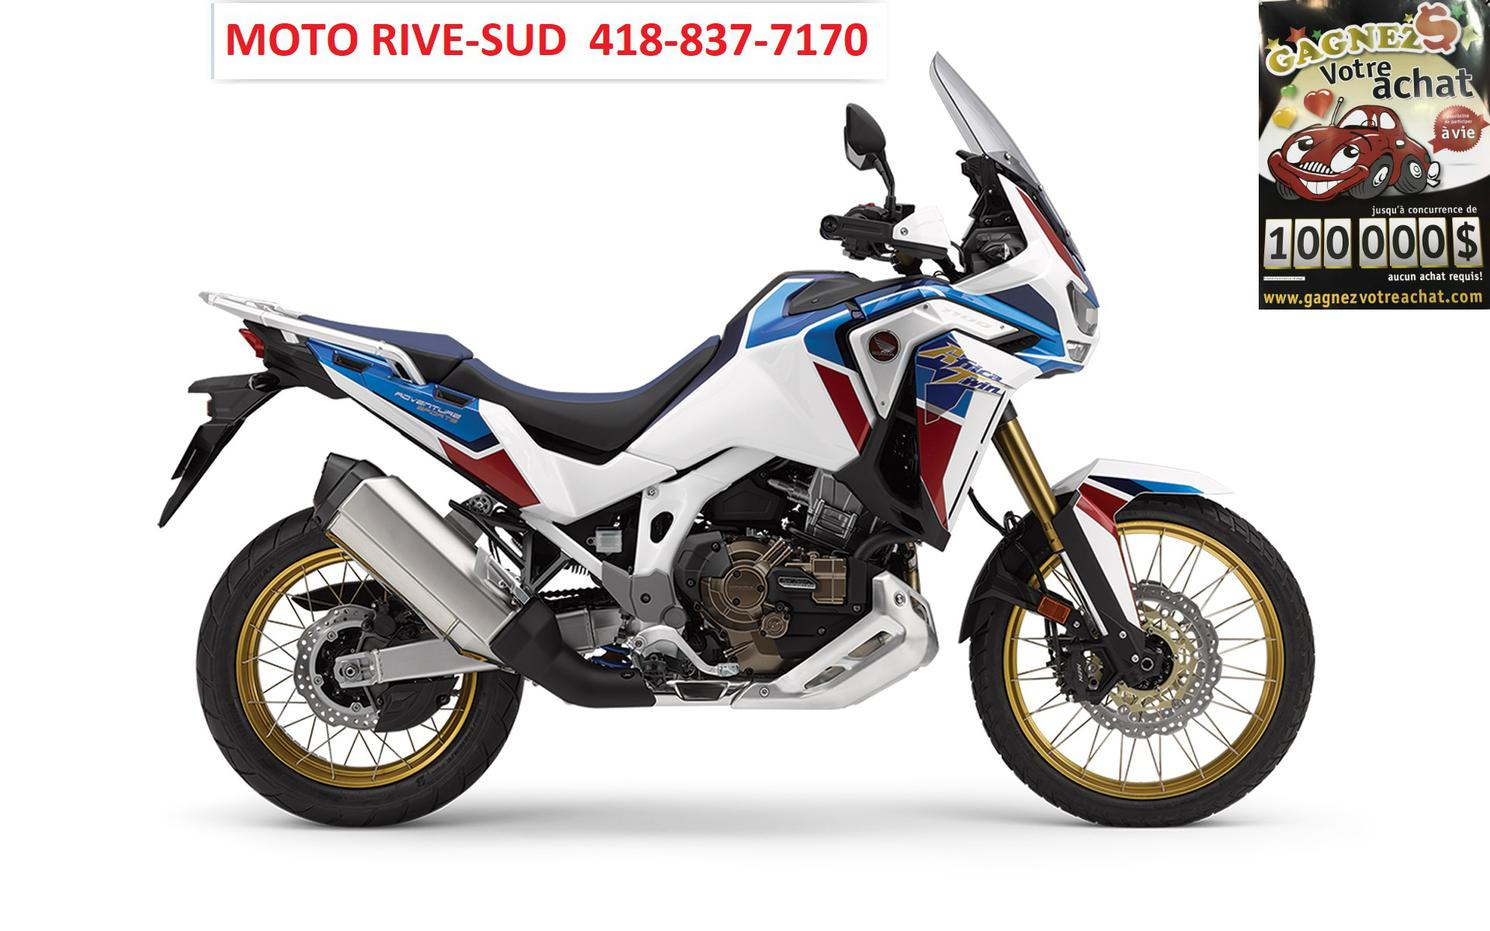 Honda AFRICA TWIN 1100 ES - DOUBLE USAGE 2021